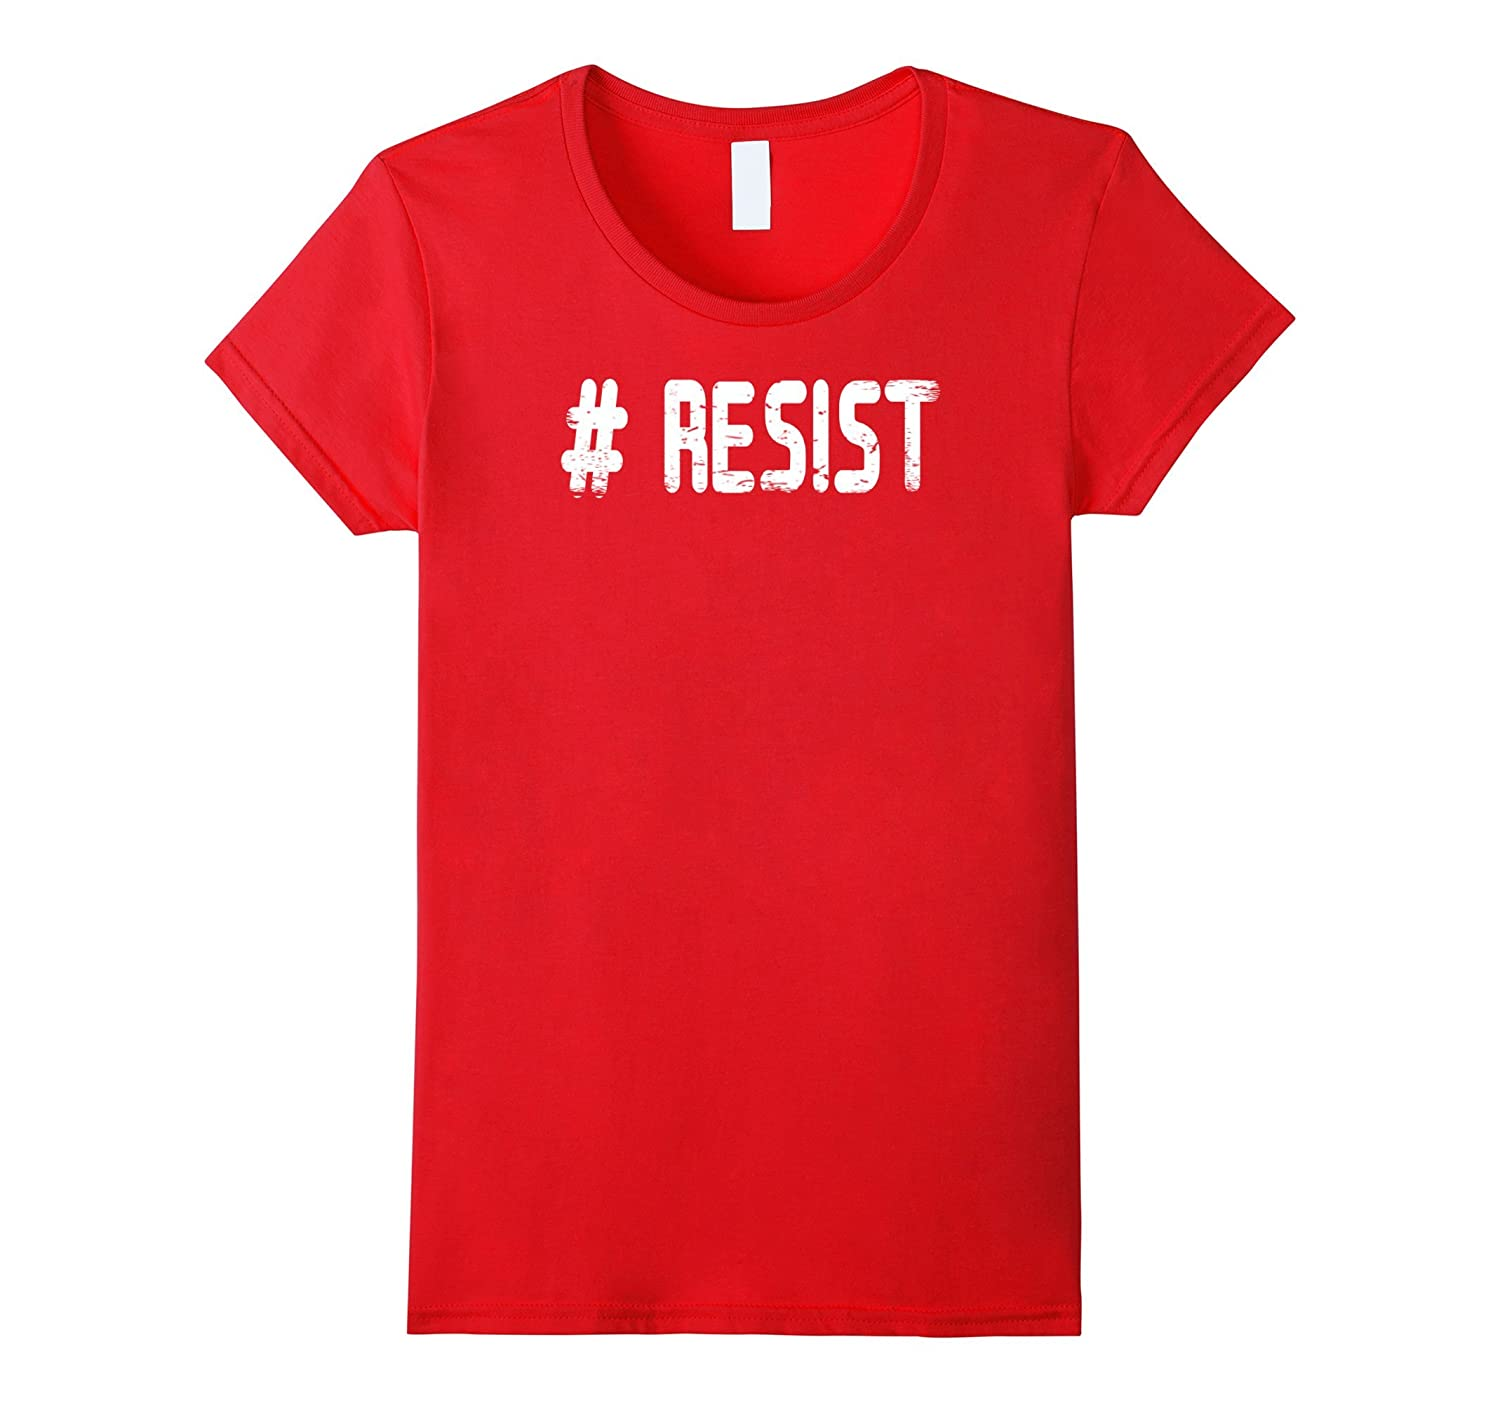 #RESIST Pink for Women's Rights Anti-Trump Resist Shirt